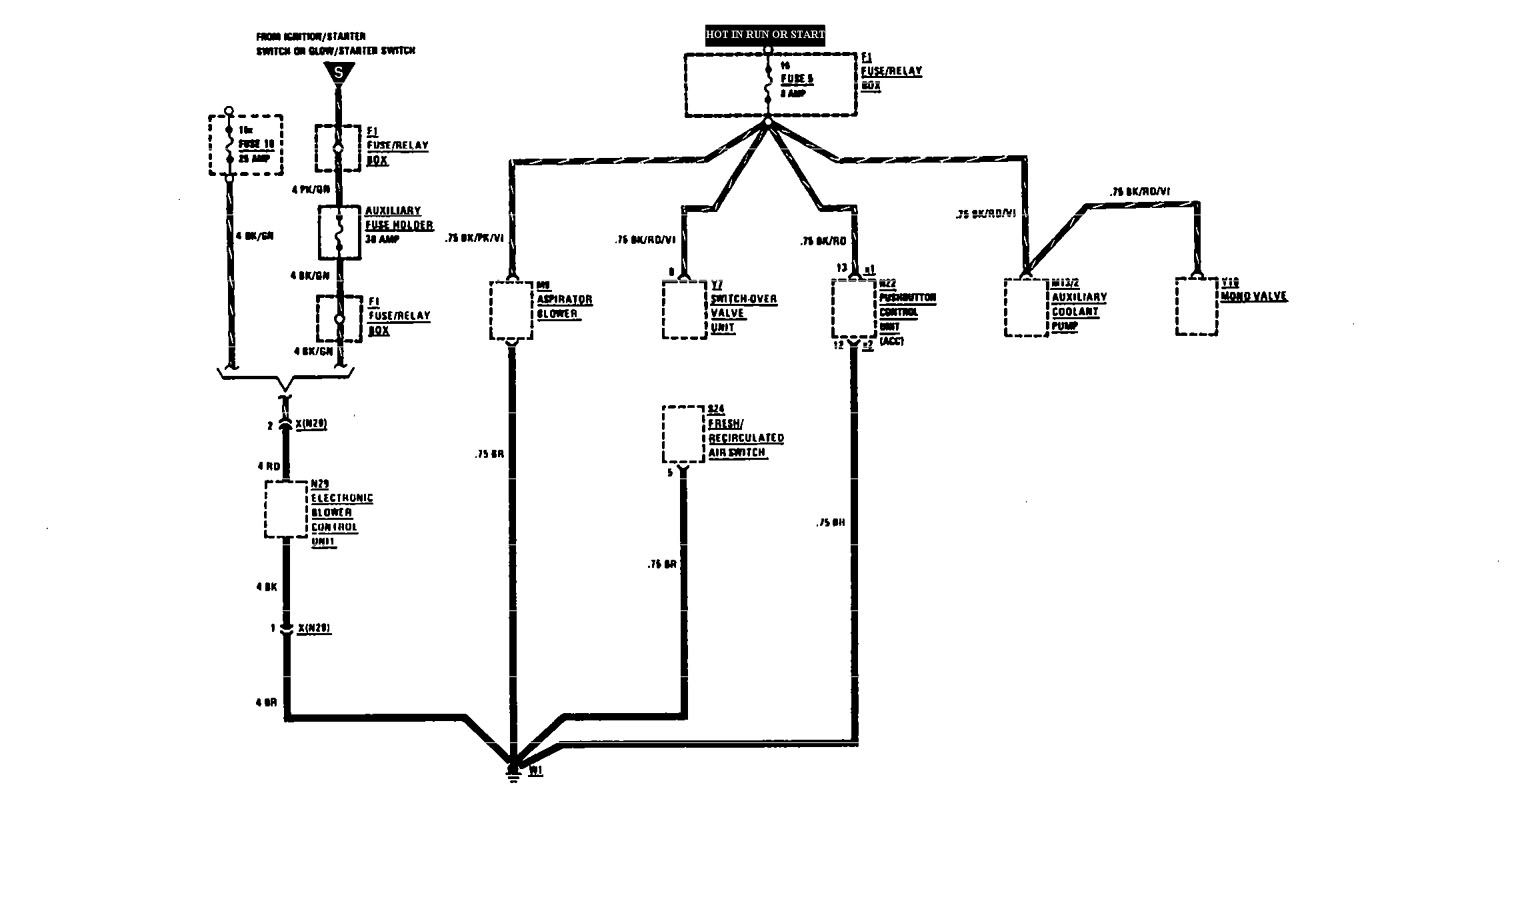 mercedes e500 wiring diagram single phase ml430 fuse best library likewise engine together with 2000 s500